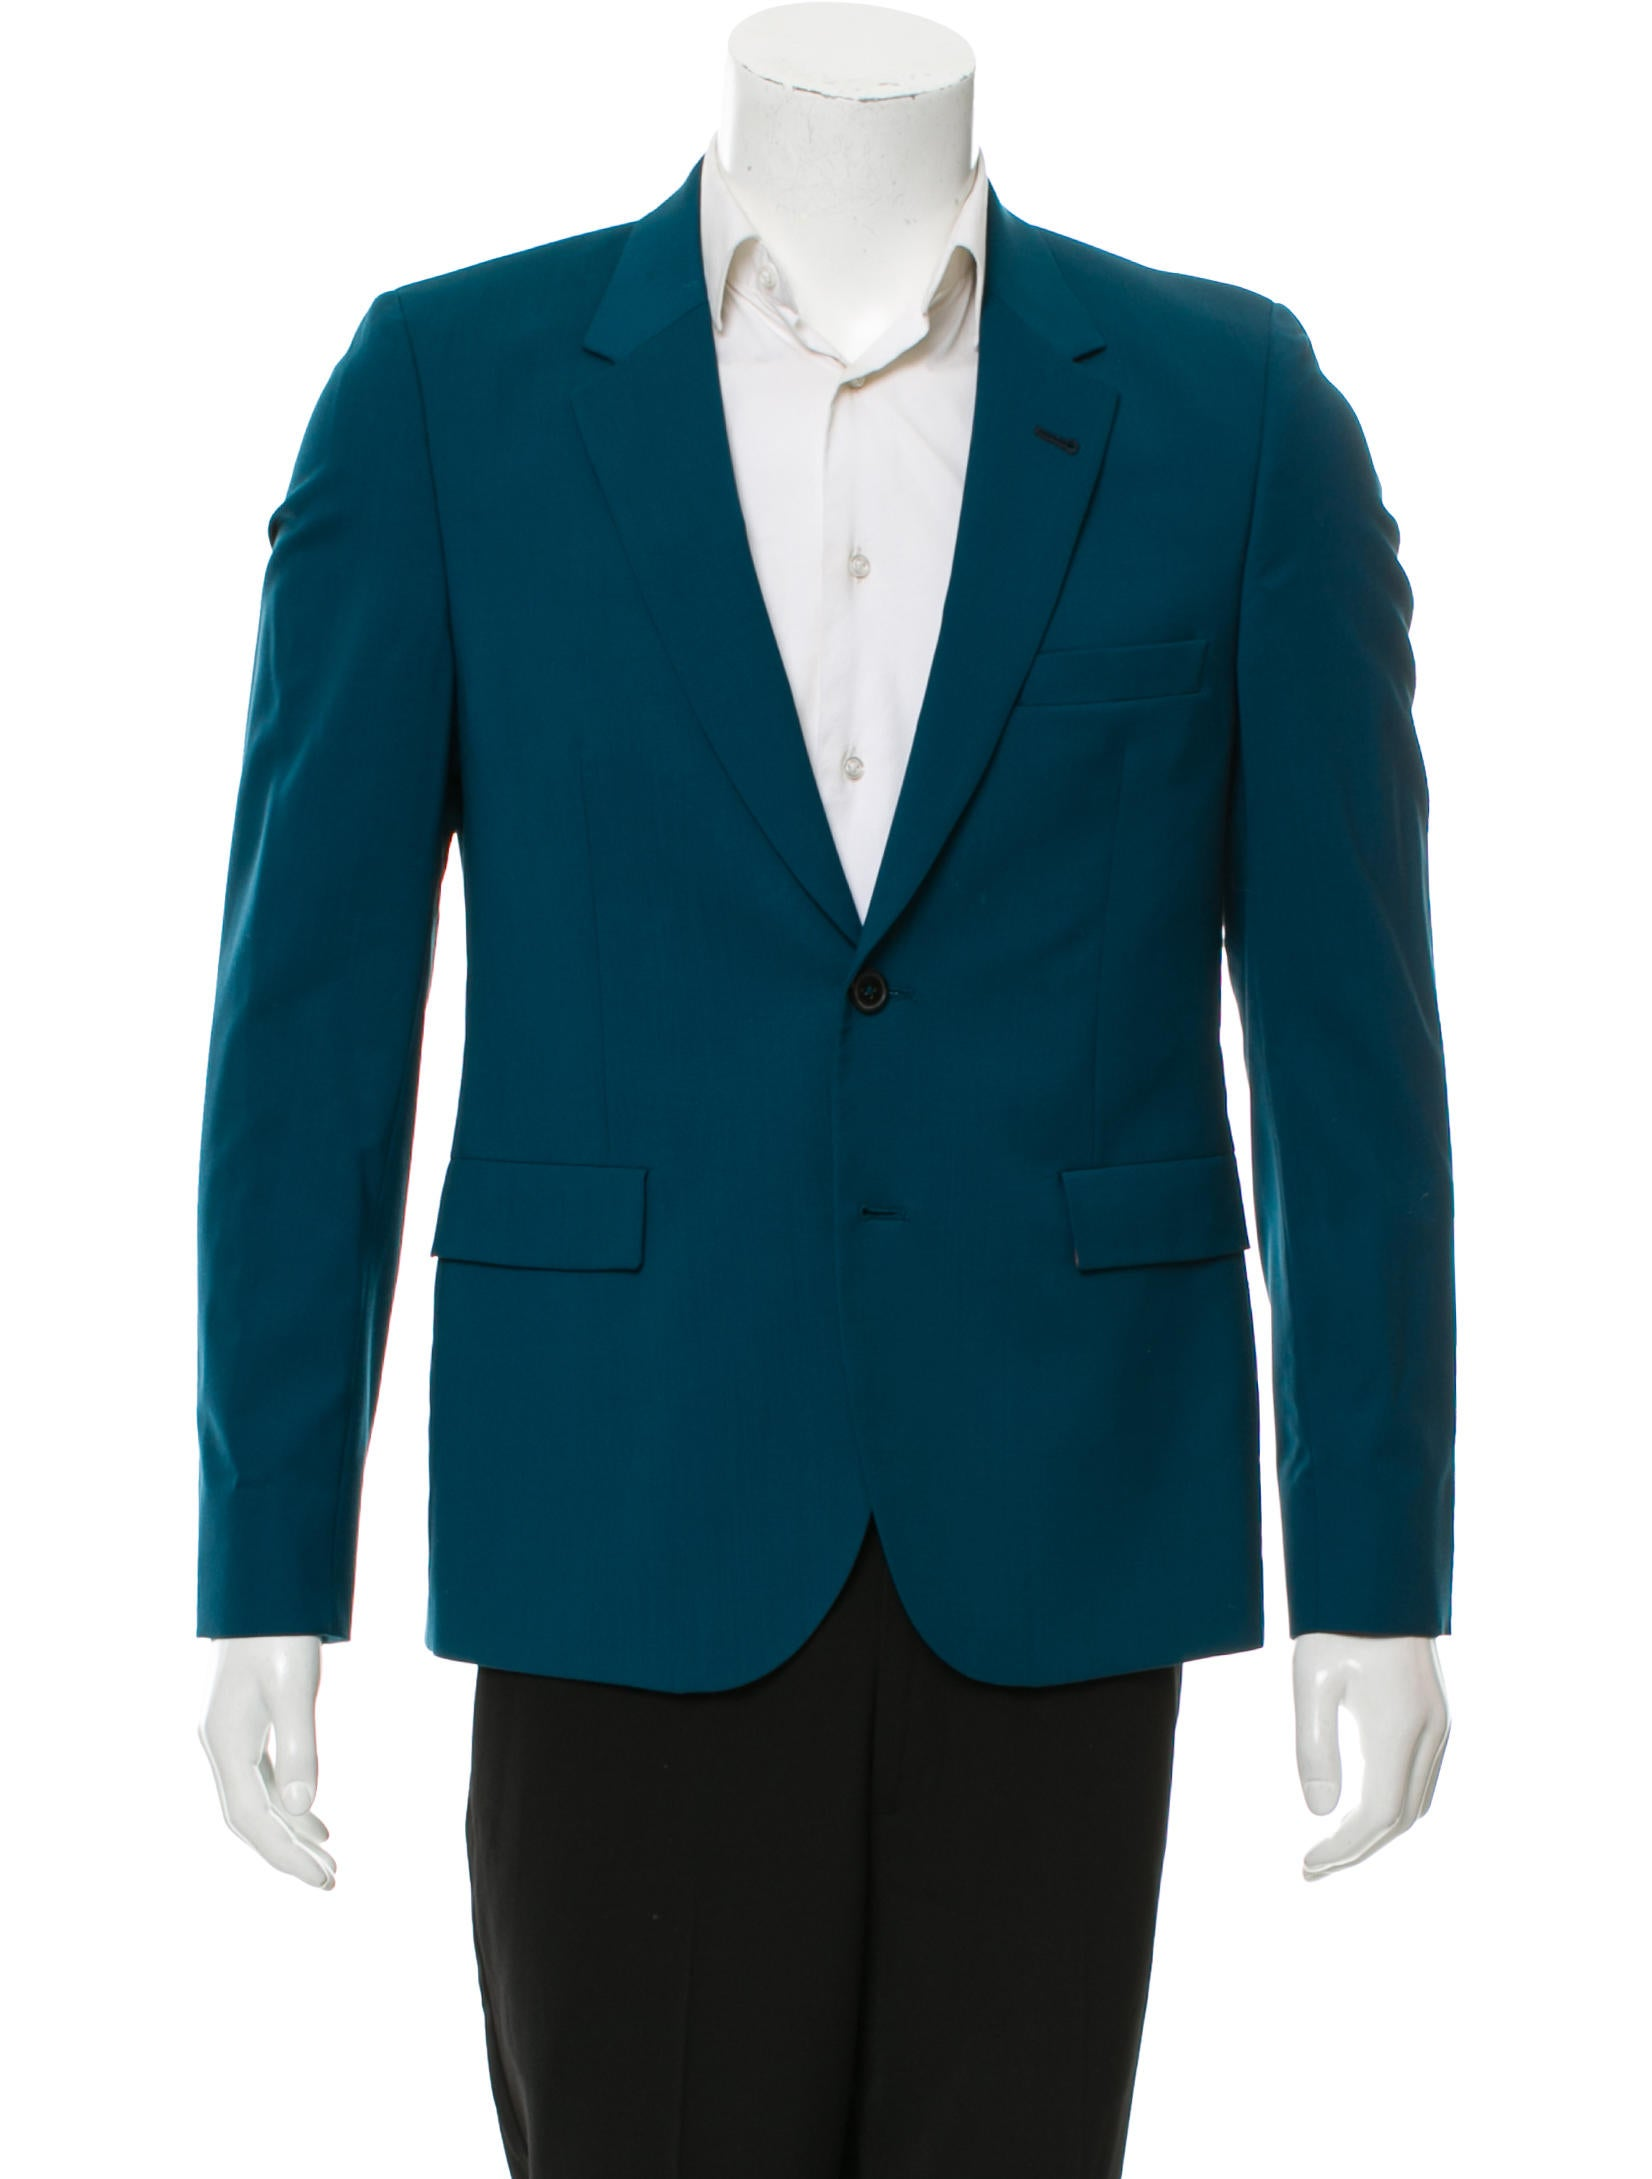 Theory Simons Notch-Lapel Blazer w/ Tags Low Shipping Fee Sale Online Cheap In China View For Sale Free Shipping Footlocker Pictures s4NBr0